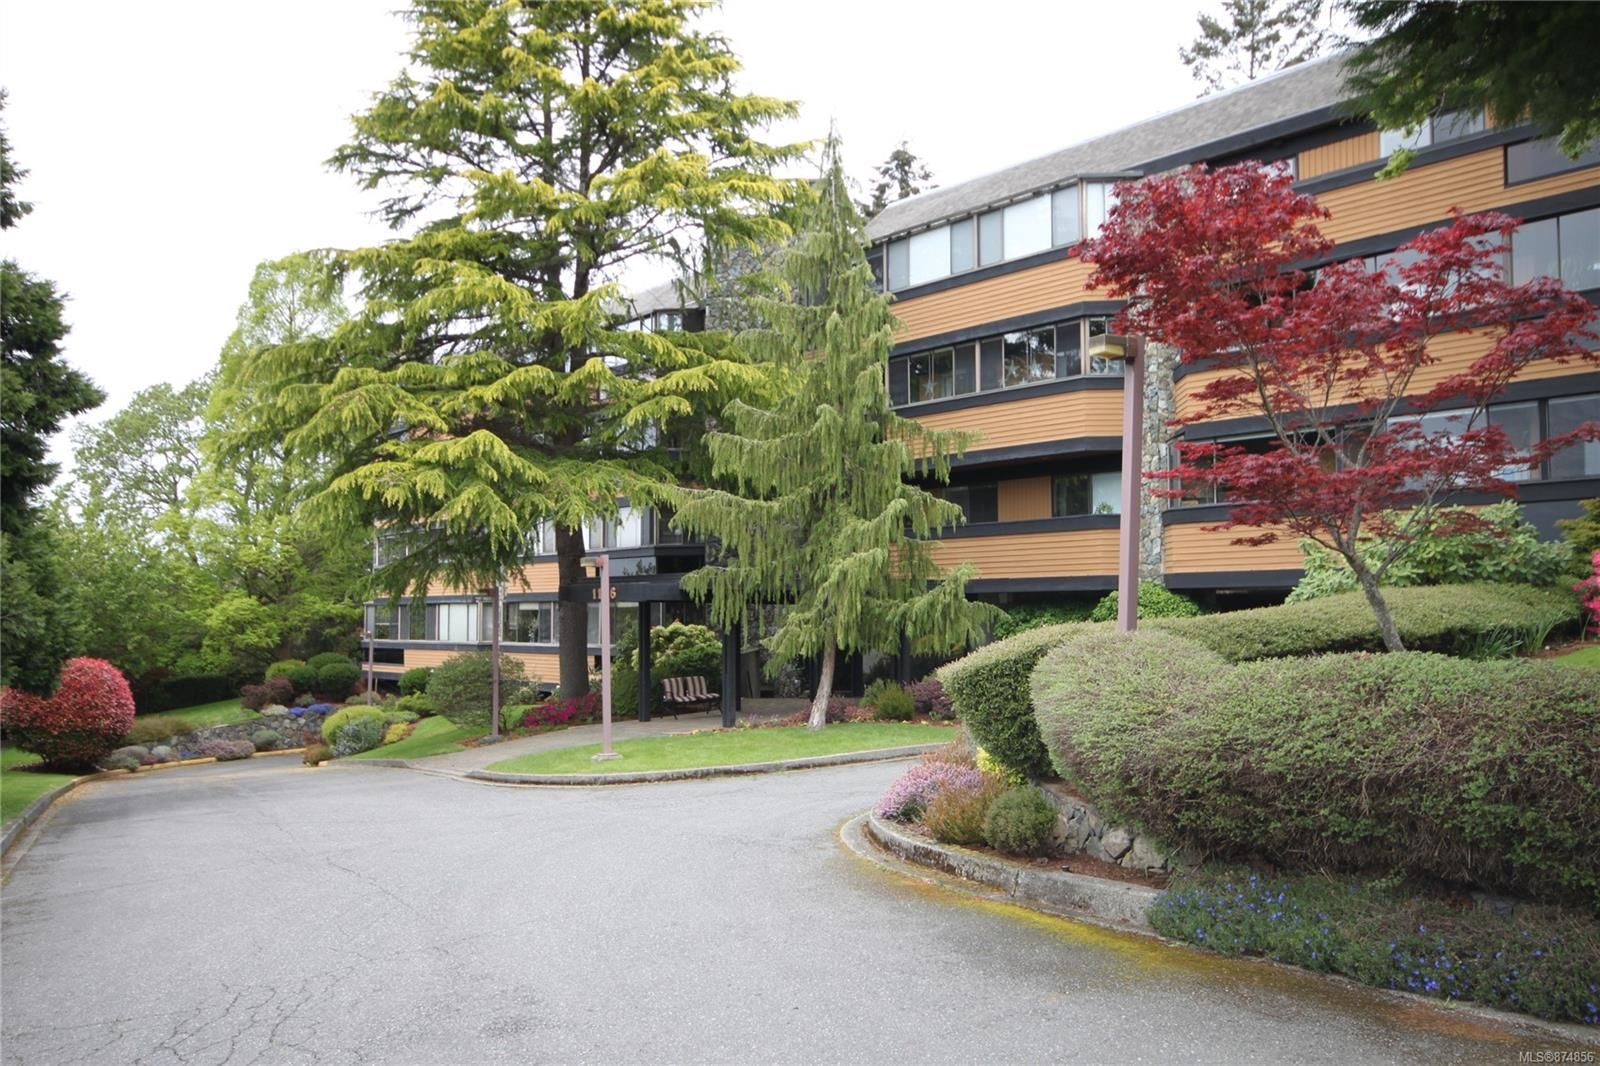 Main Photo: 302 1106 Glenora Pl in : SE Maplewood Condo for sale (Saanich East)  : MLS®# 874856